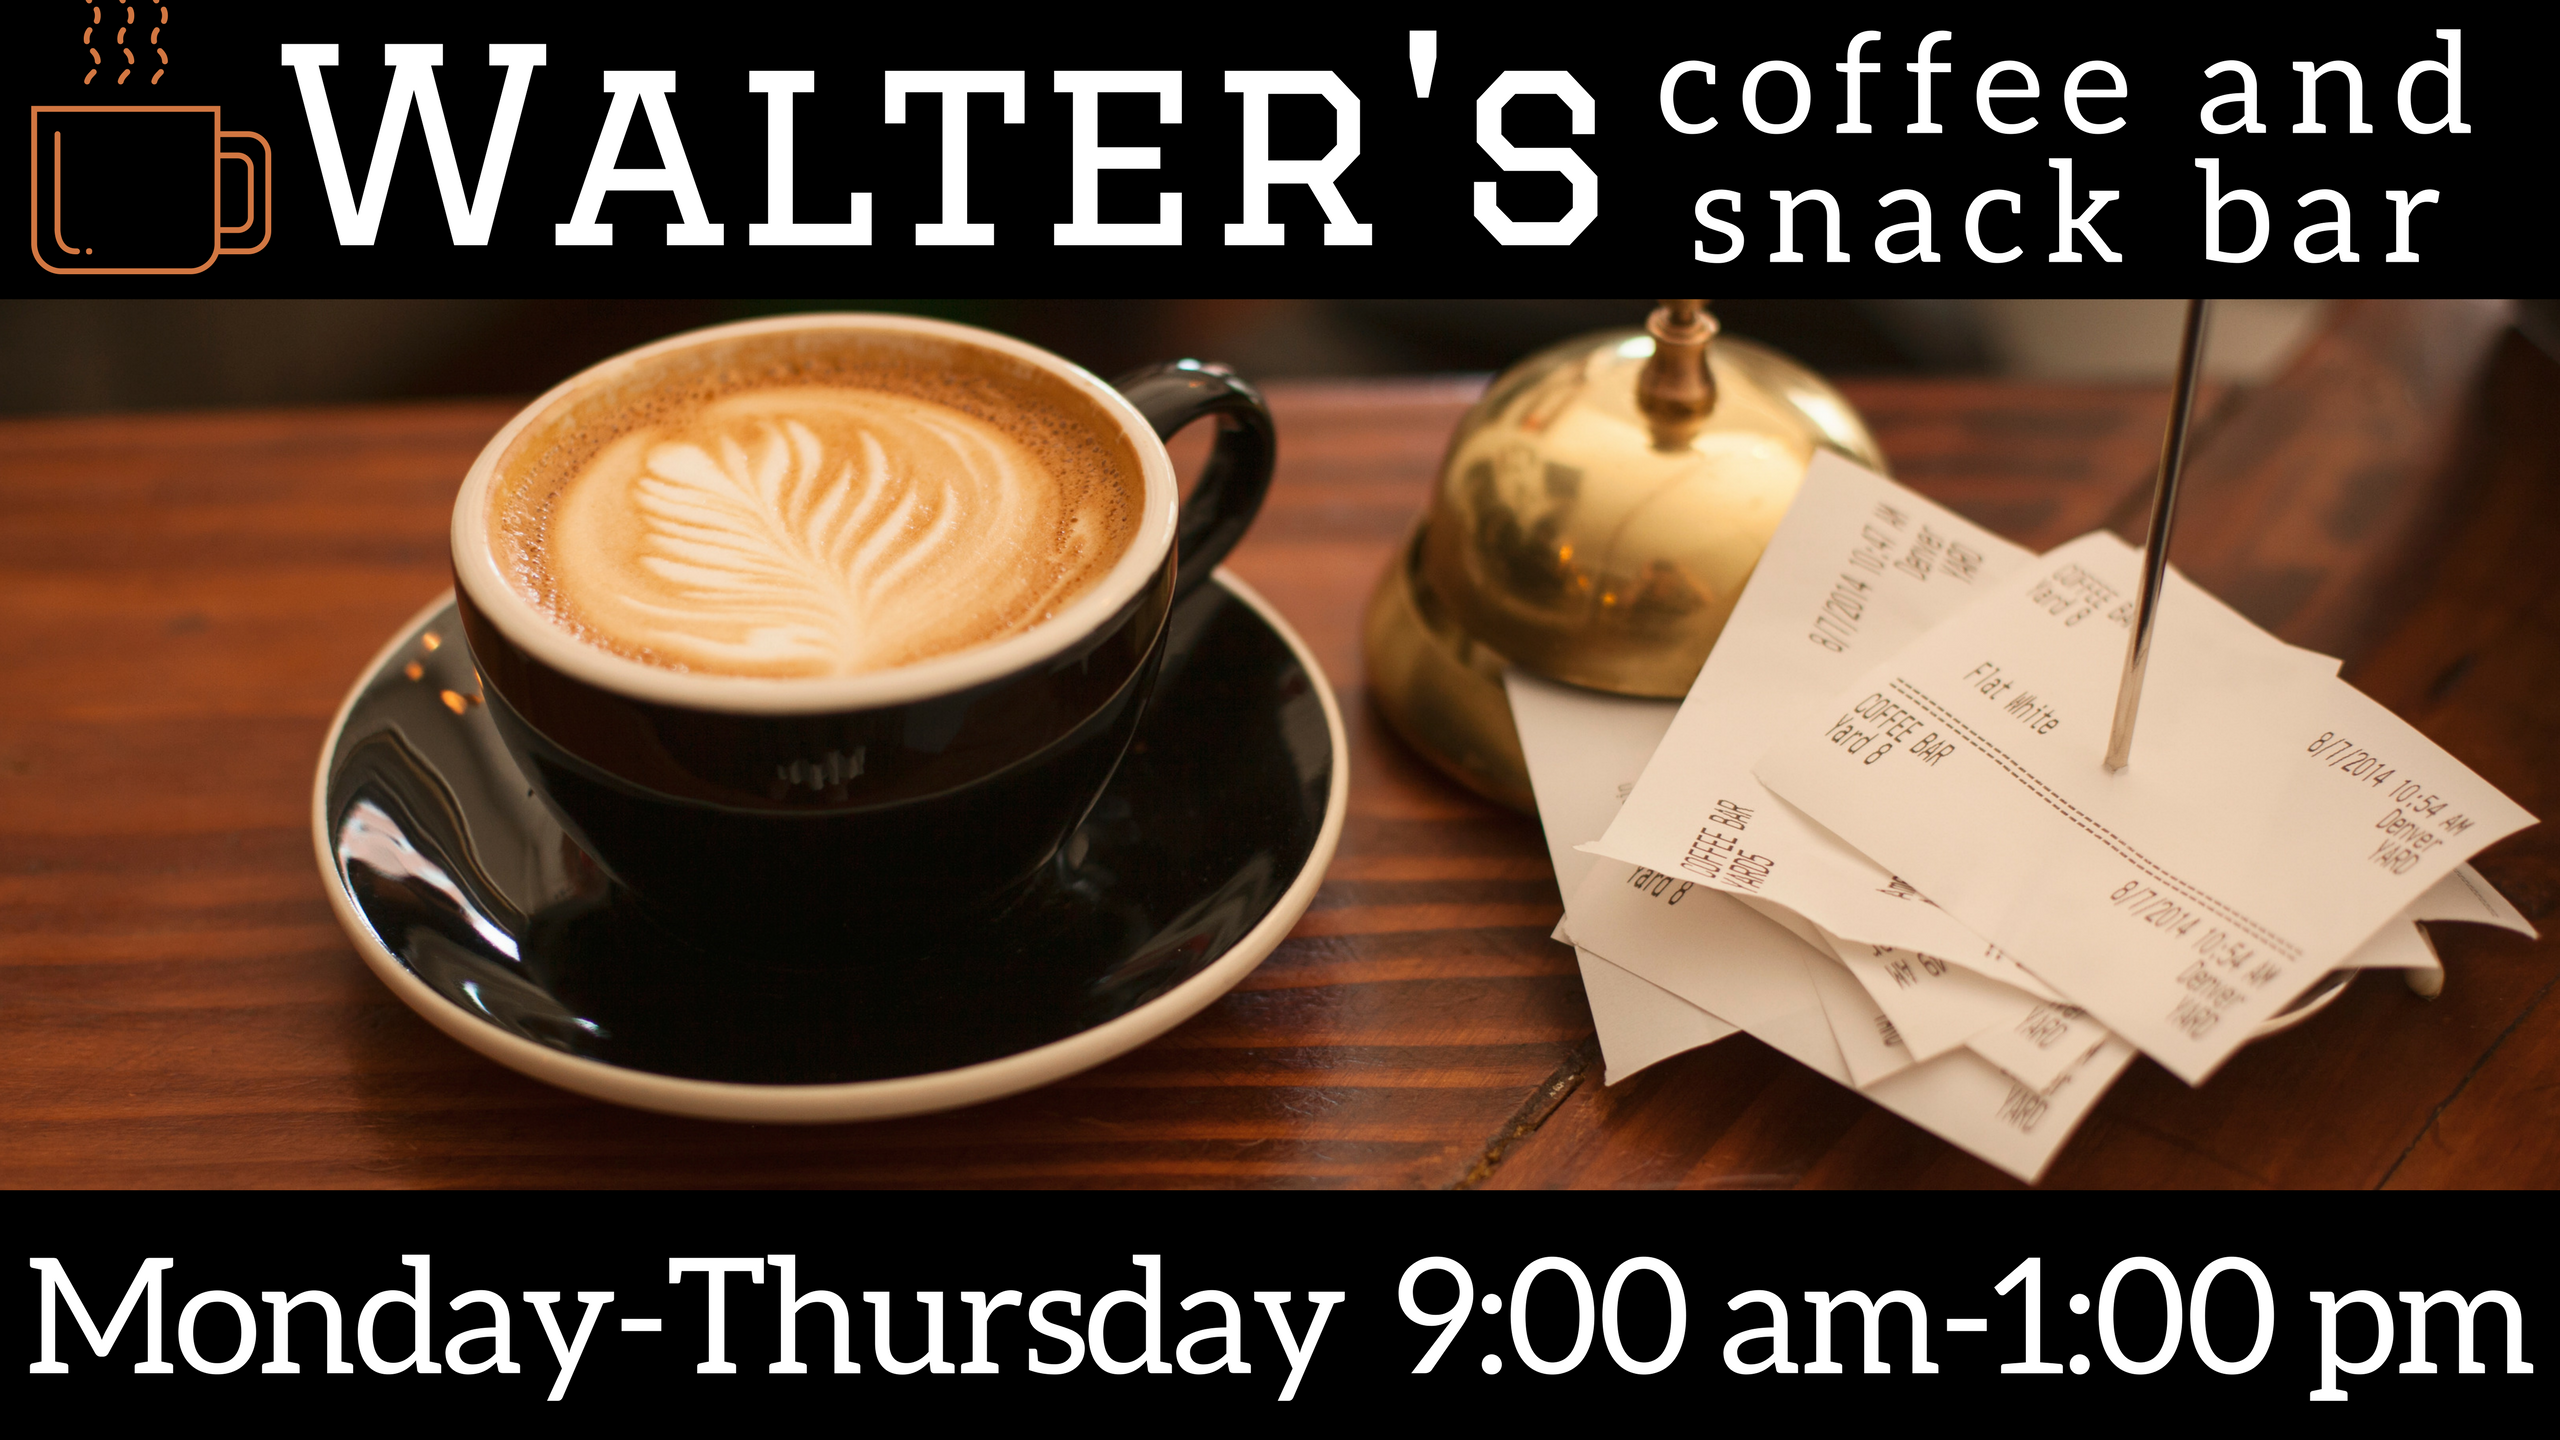 Walter's coffee and snack bar summer hours